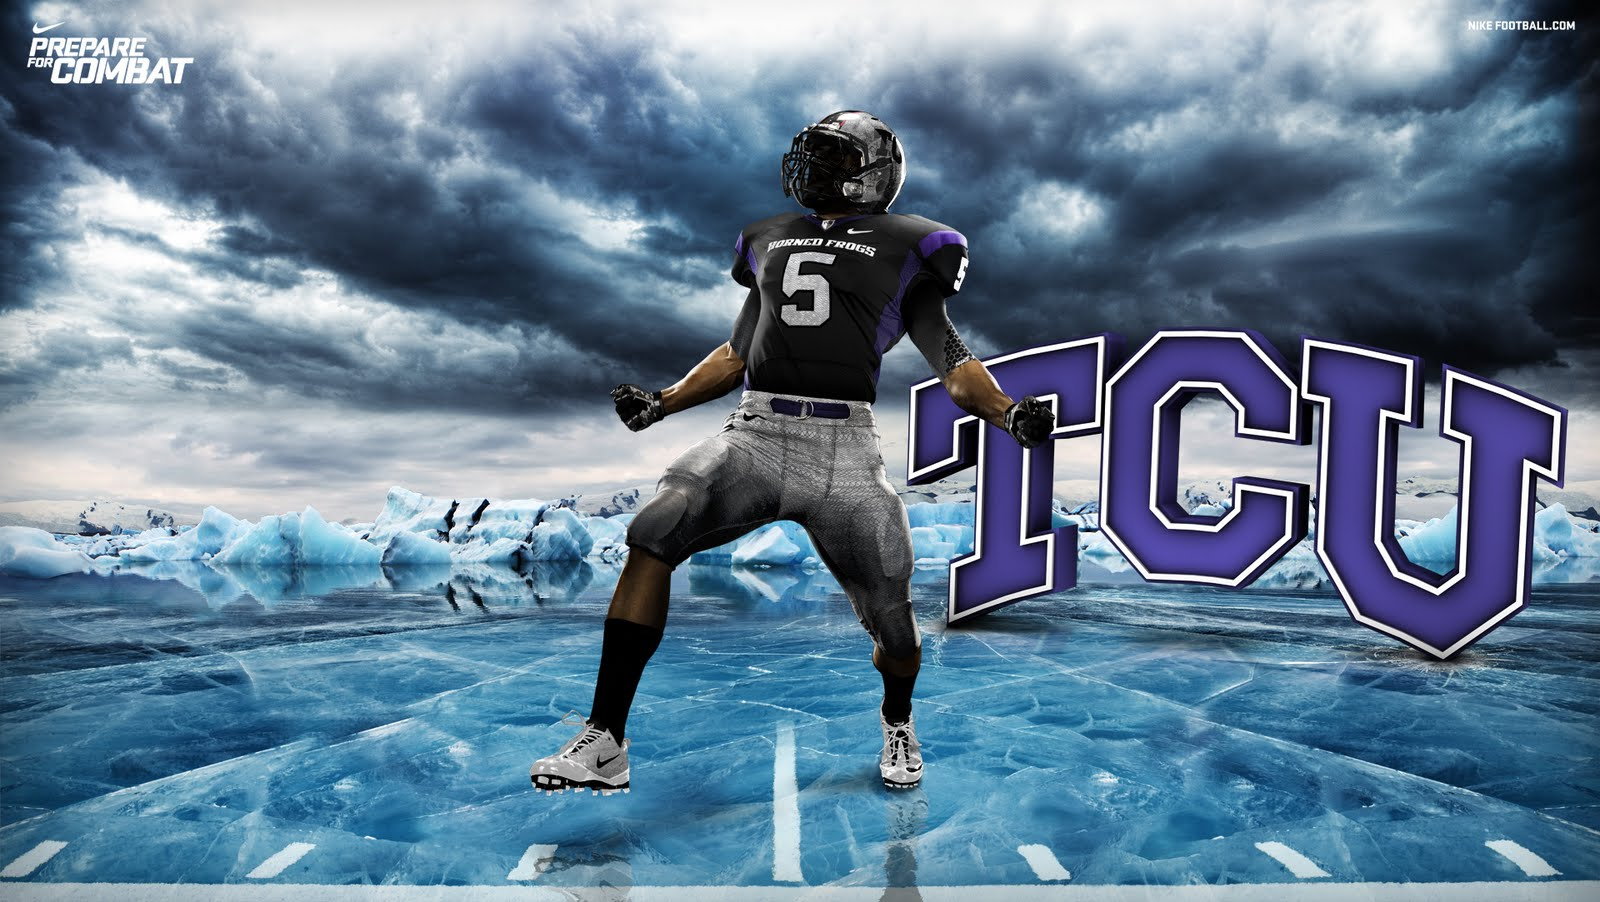 TCU HORNED FROG WOMENS SOCCER NIke Combat Football Jersey Released 1600x902